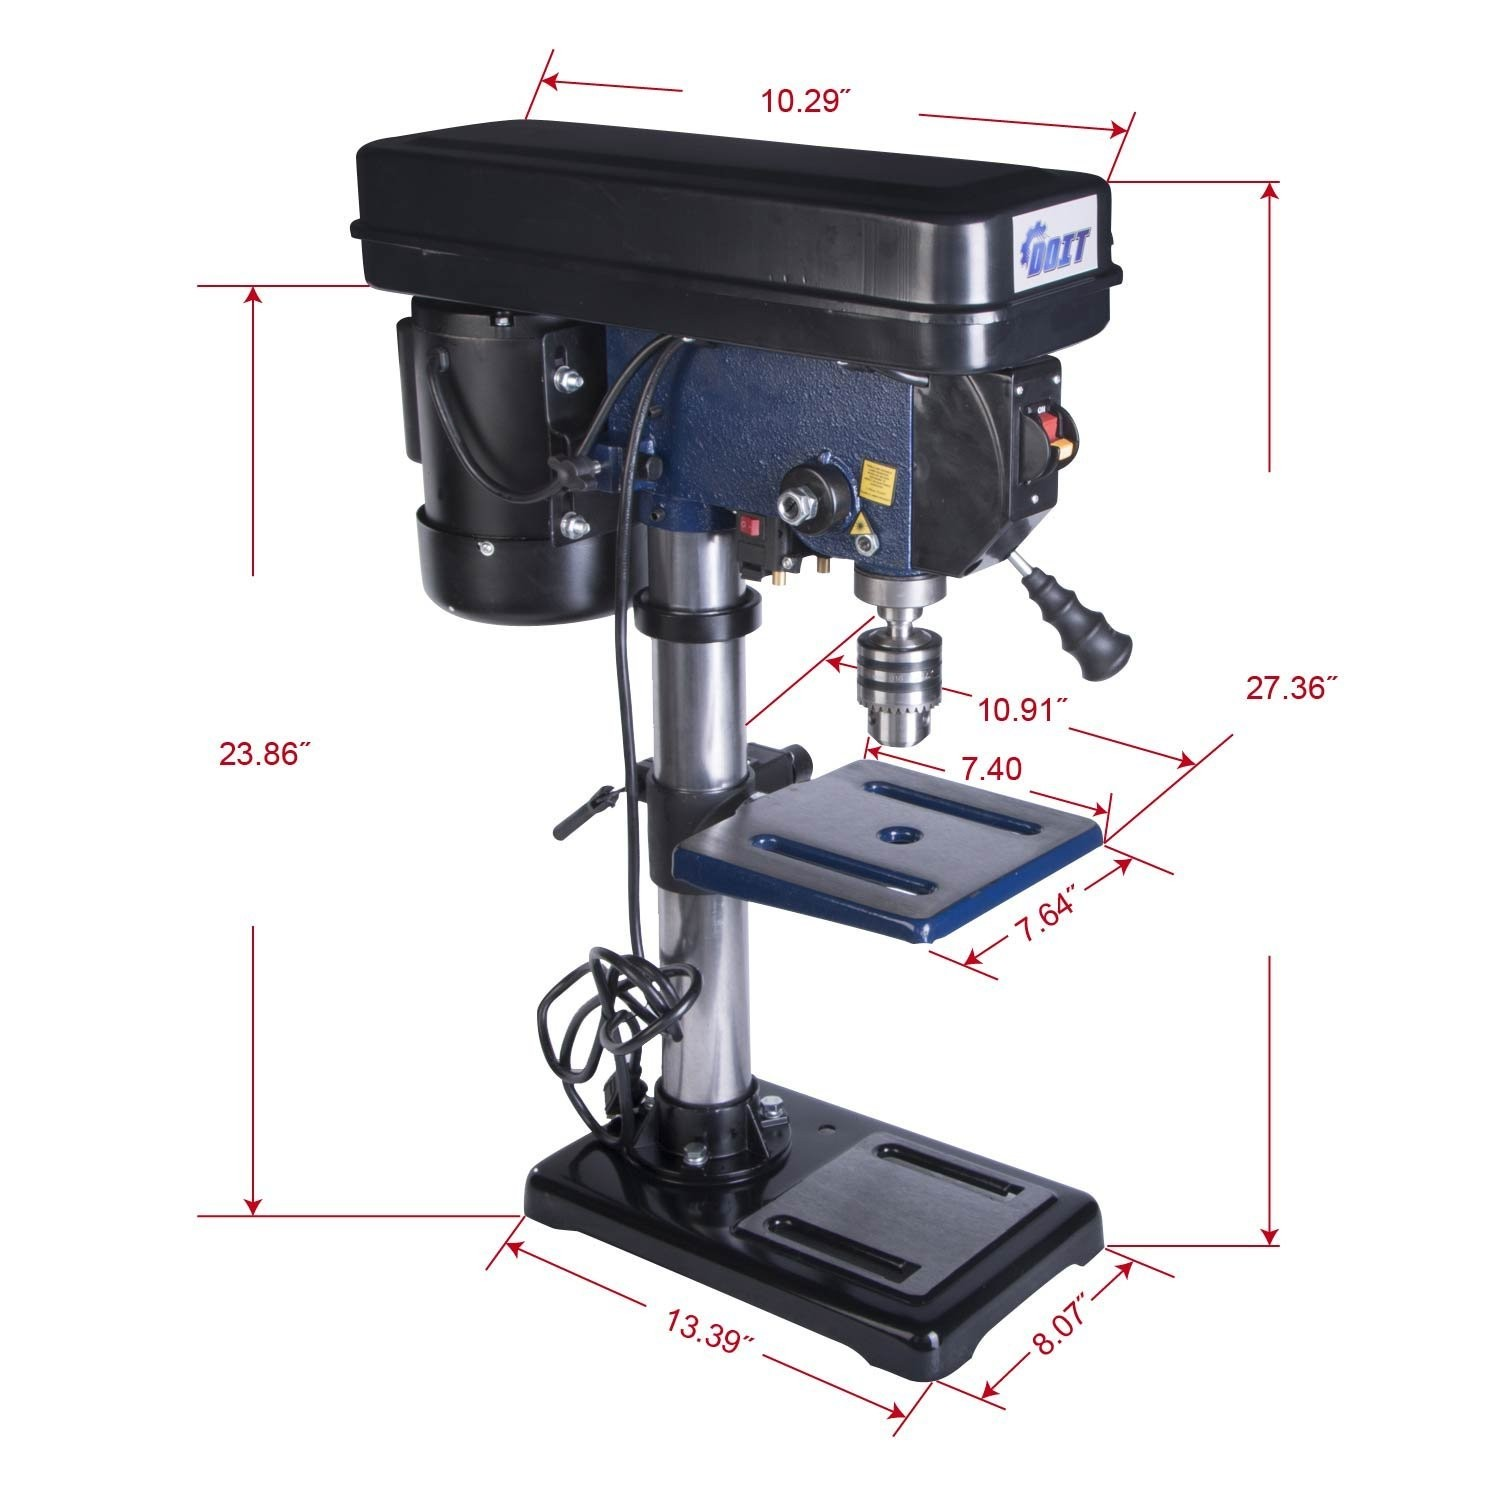 Doitpower 10-Inch drill press